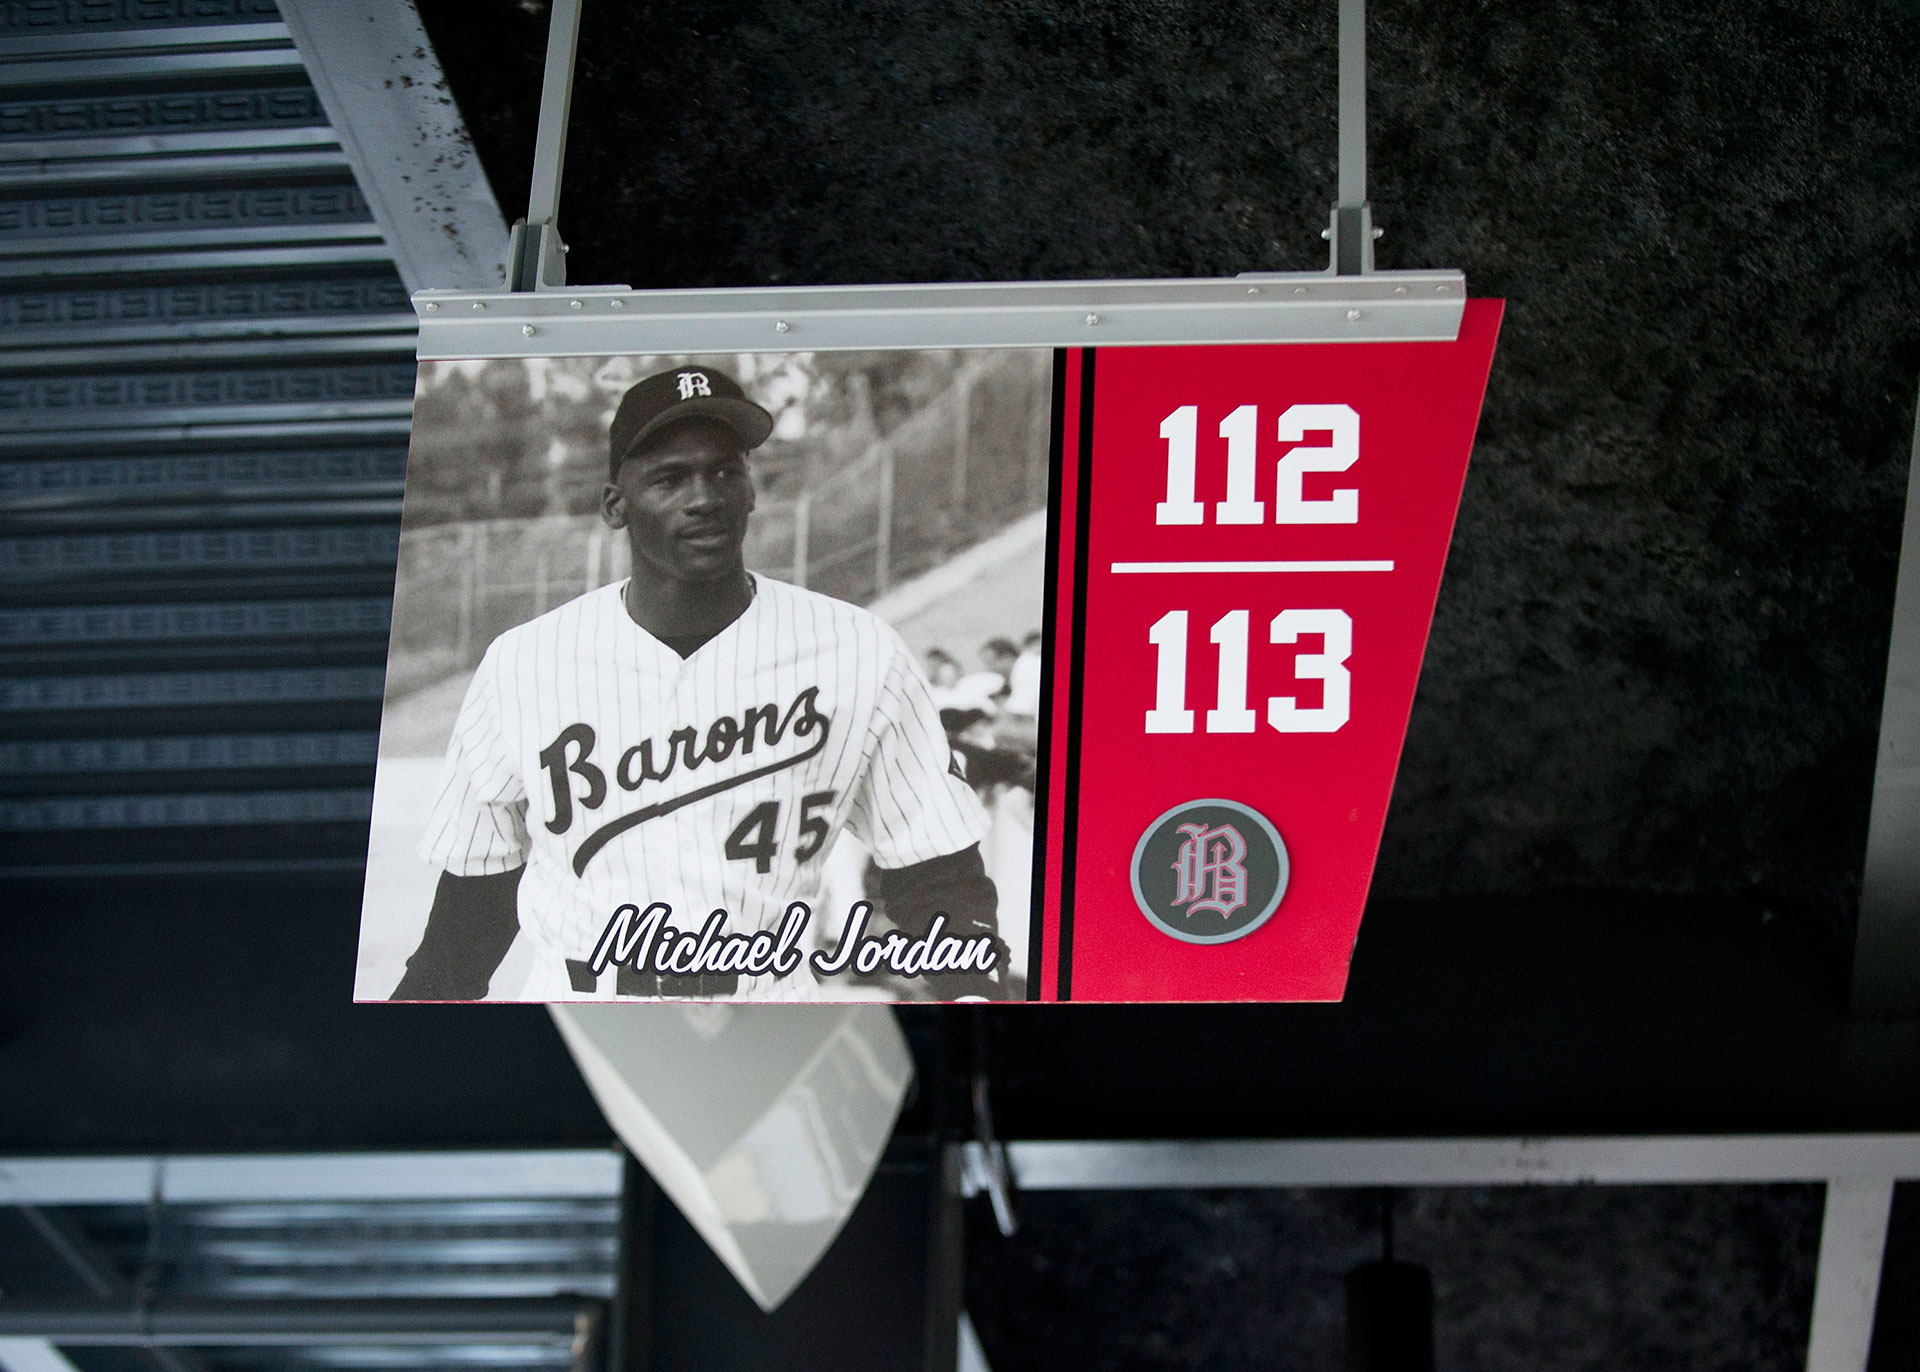 Overhead section ID signage at Regions Field